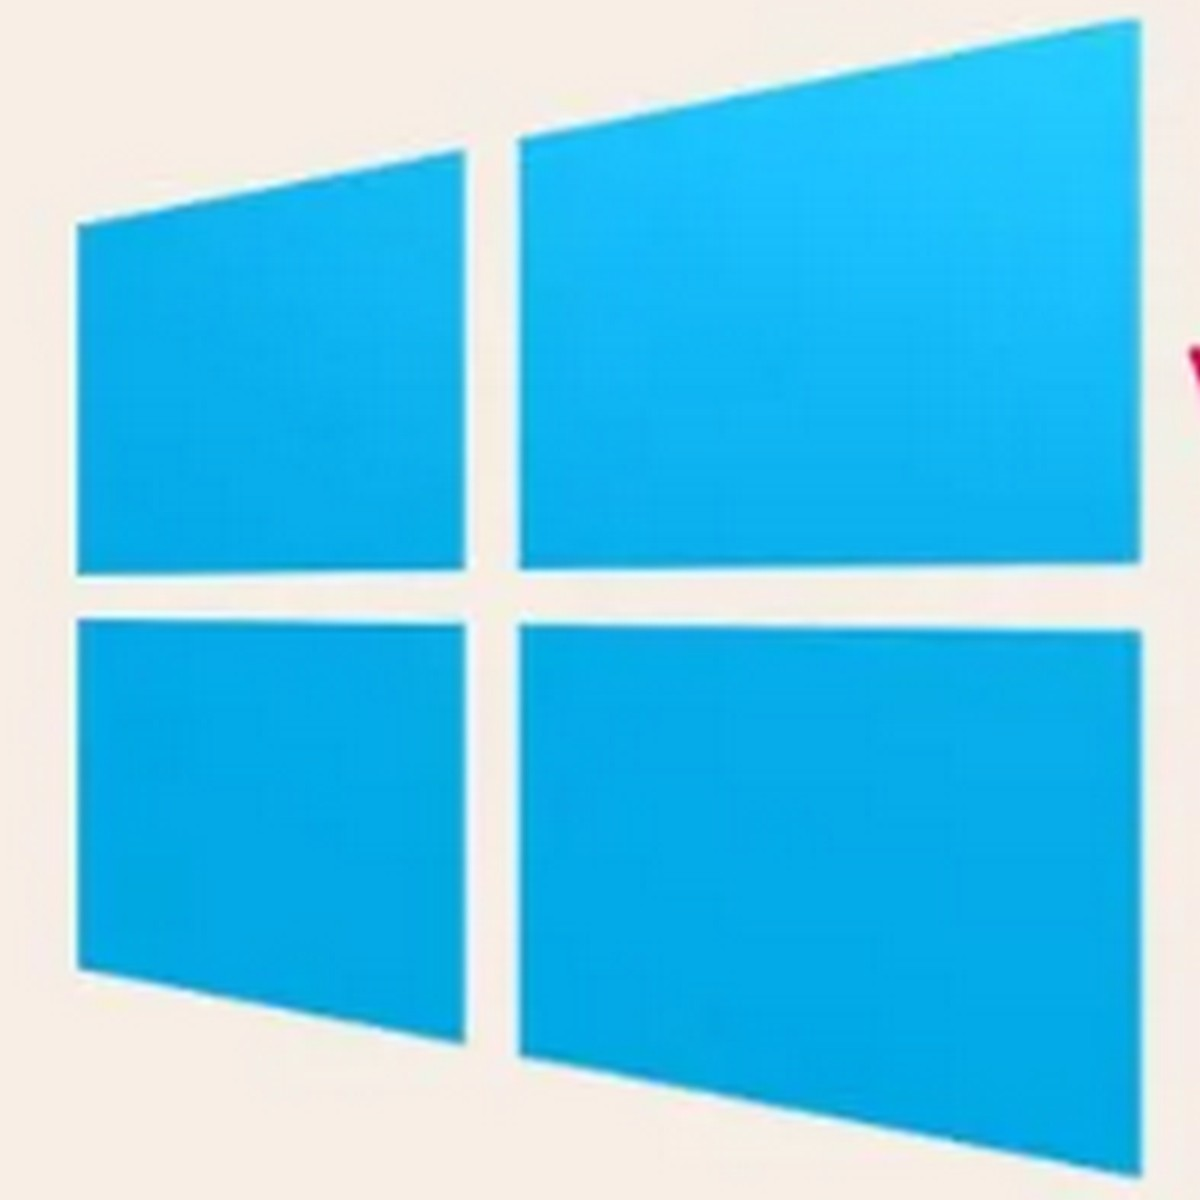 Download Windows 8.1 ISO [ISO to USB] Download Latest Version 32/64Bit